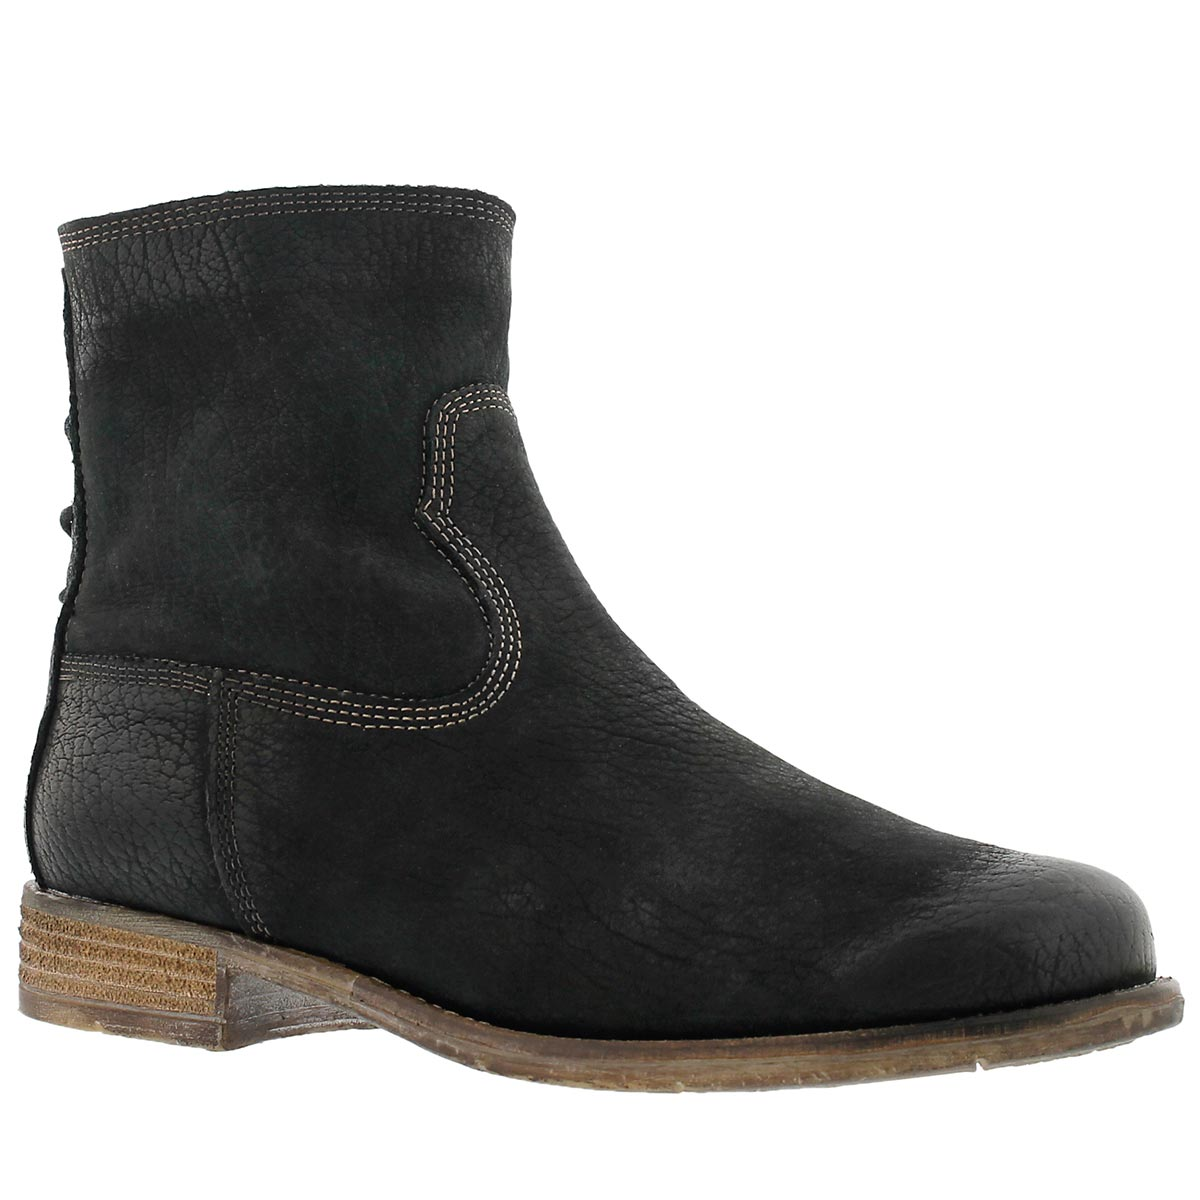 Lds Sienna 01 black zip up ankle boot